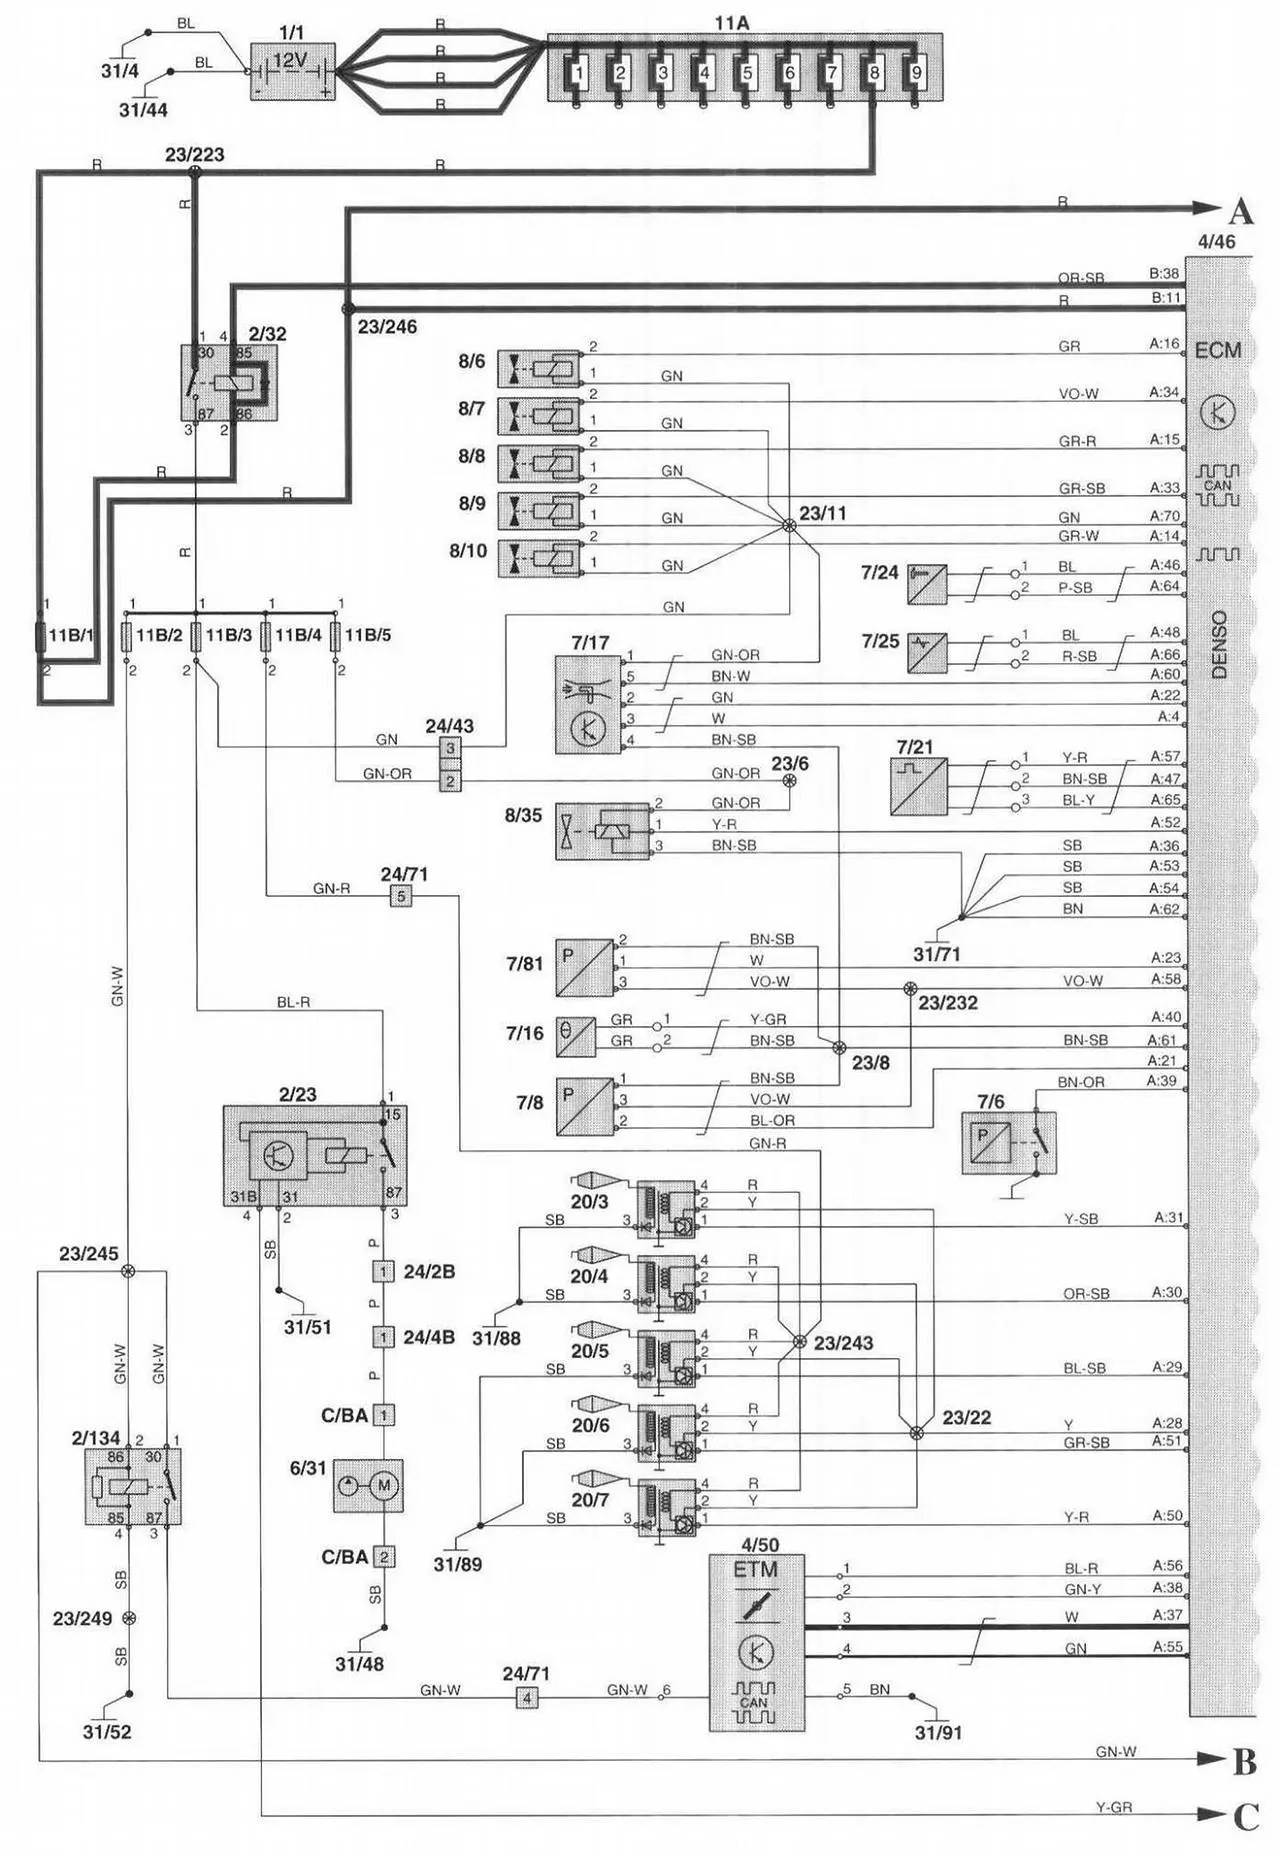 hight resolution of 99 volvo s80 wiring diagram wiring schematic diagram 127 fiercemc covolvo s80 wiring diagram wiring diagram